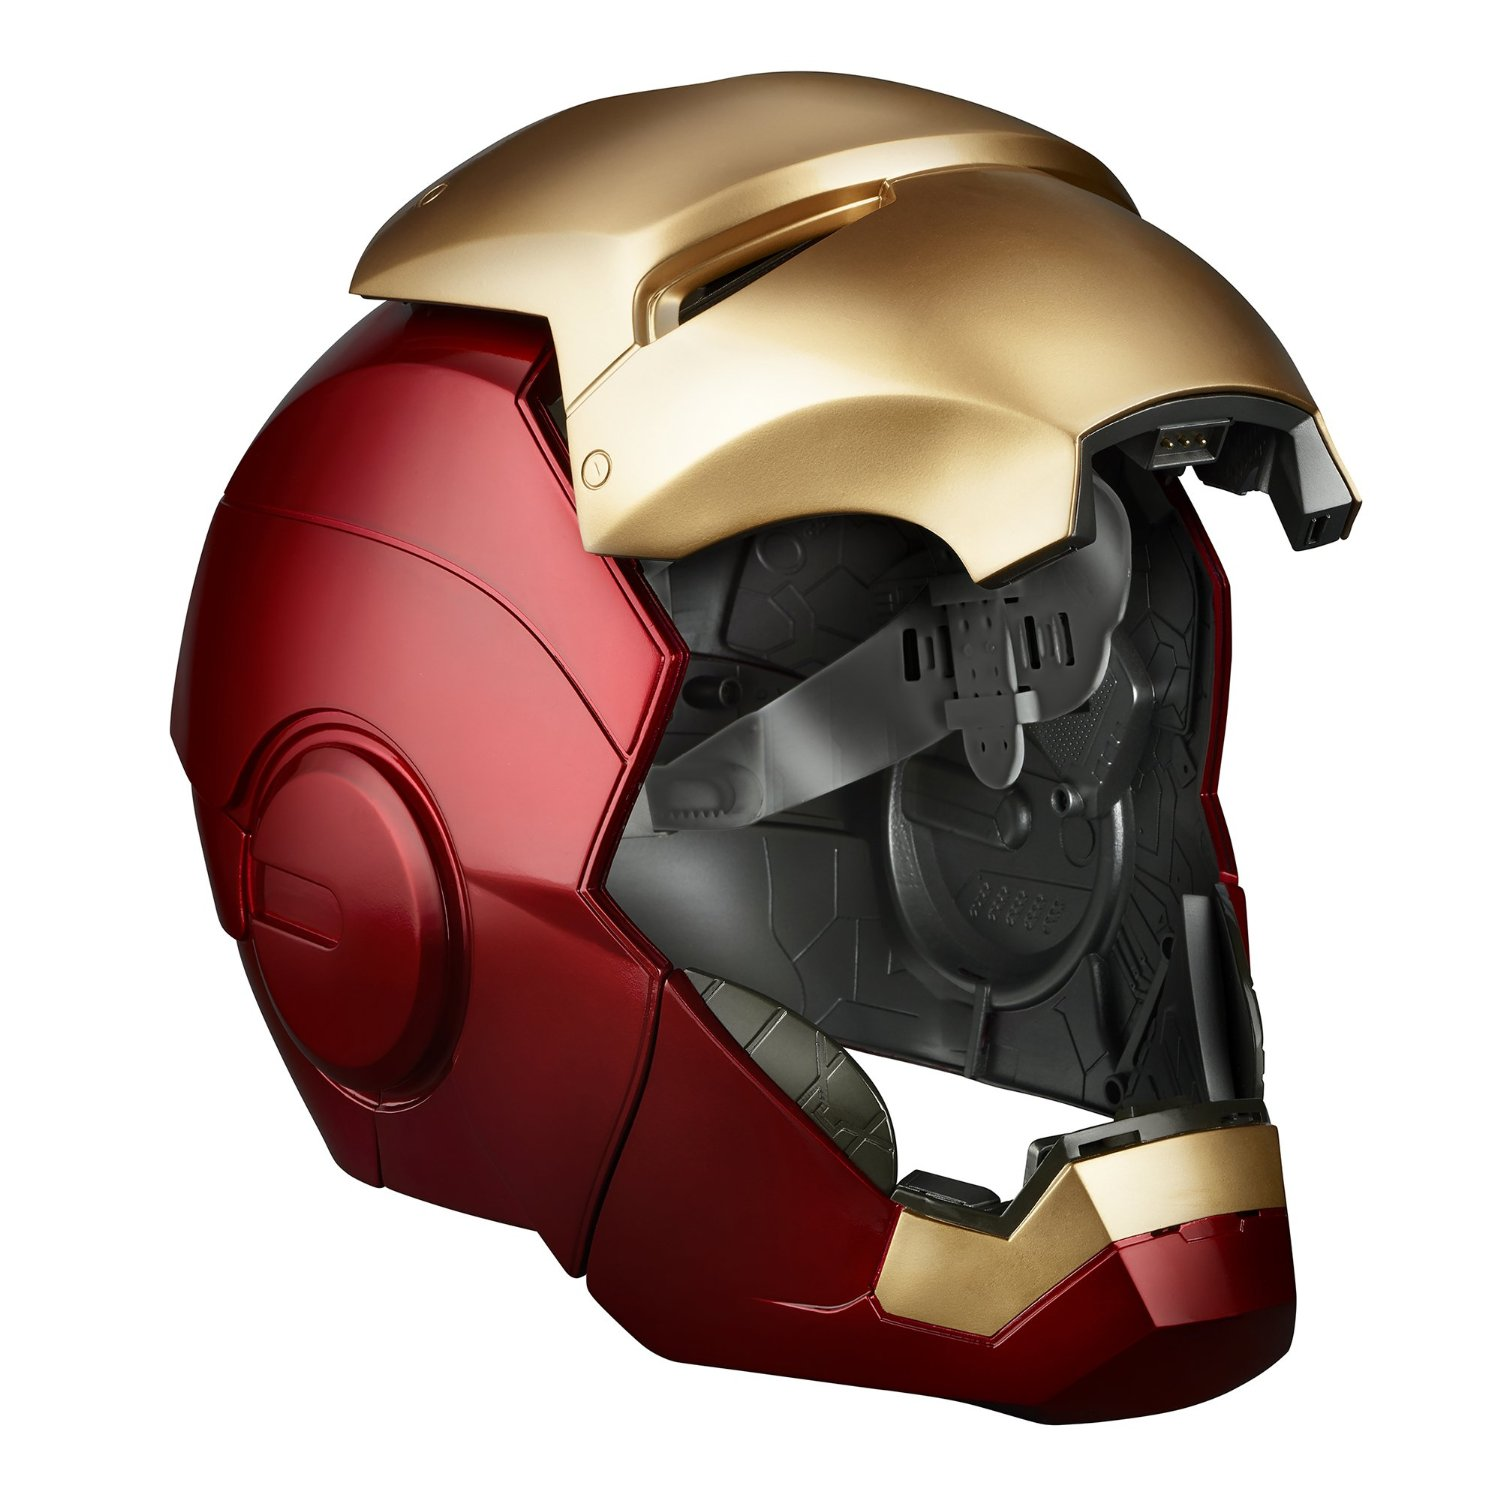 Pre-Order The Captain America Civil War Role Play Items ...